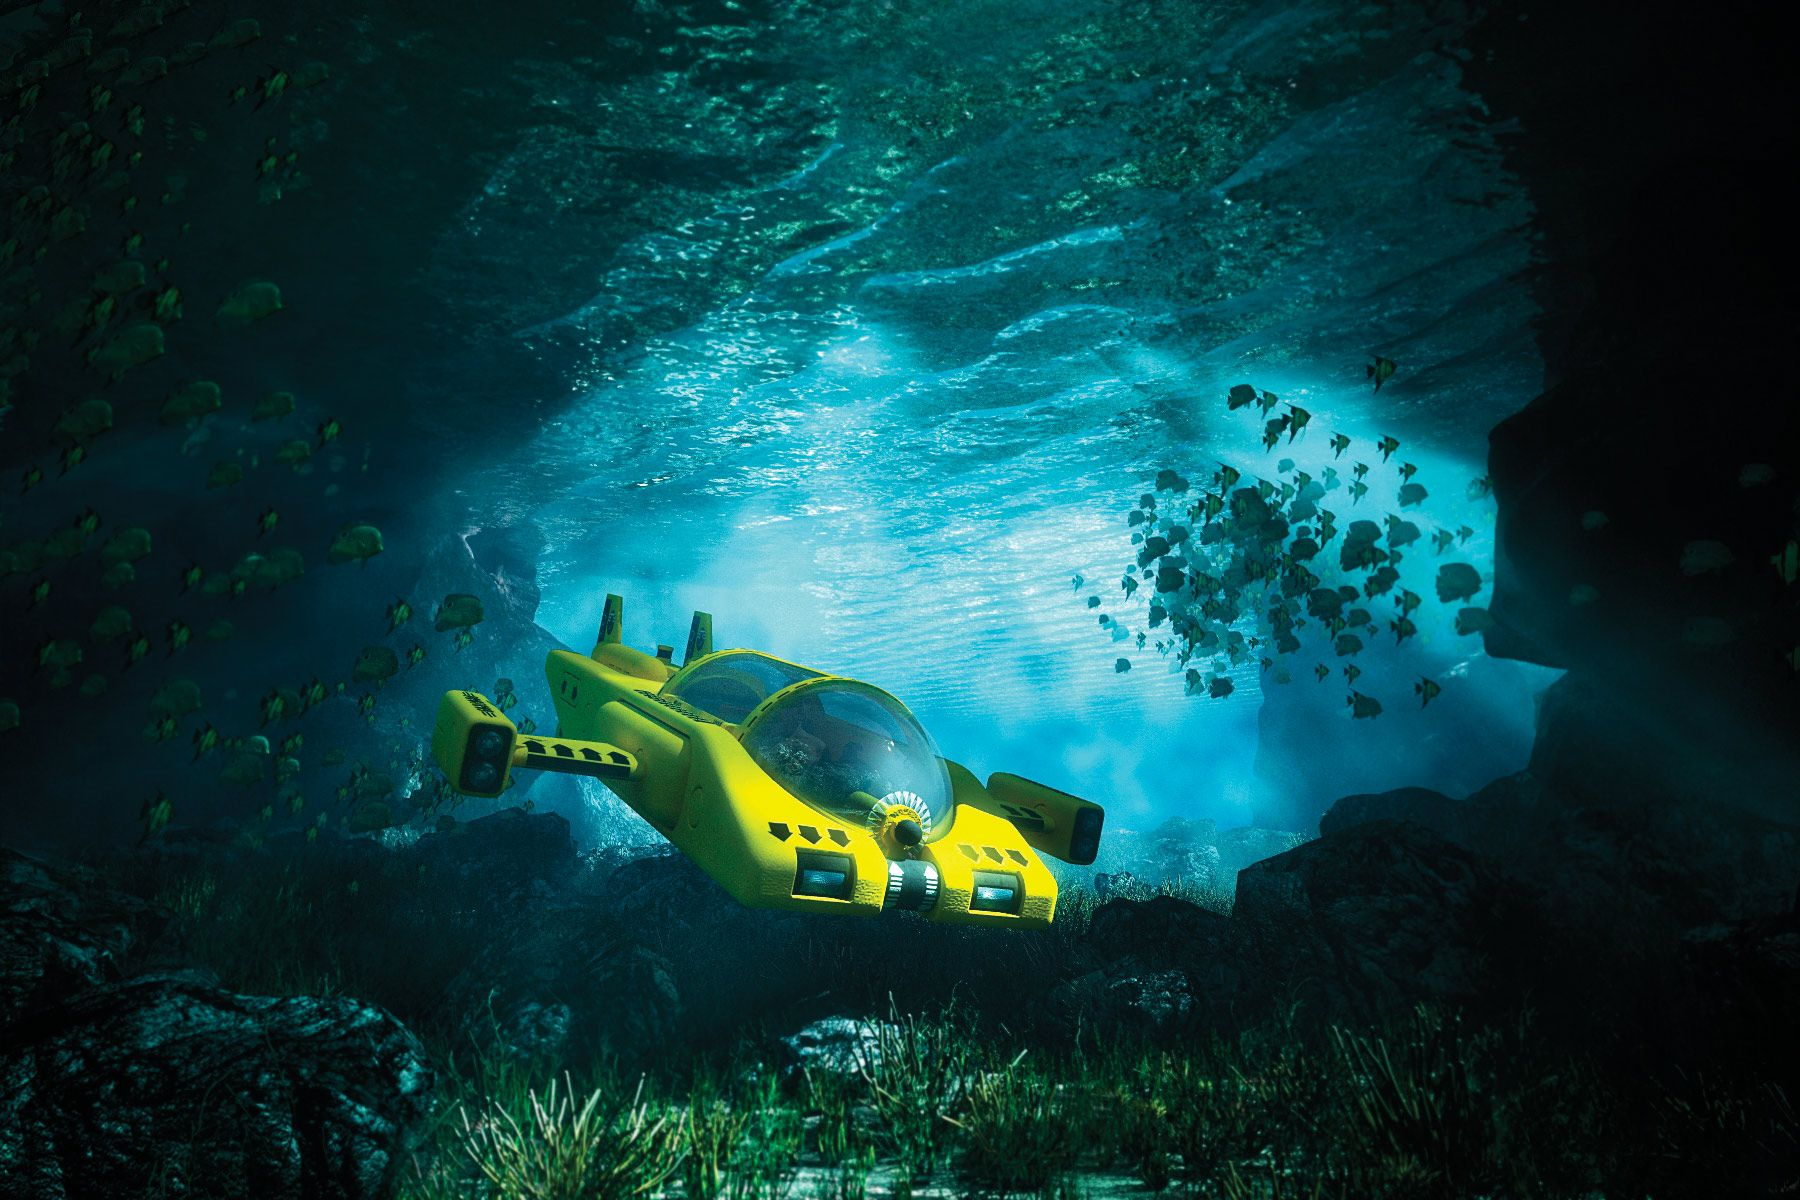 For clients who want to explore beneath the boat, Yomira's brokers can discuss charters that include submersibles.